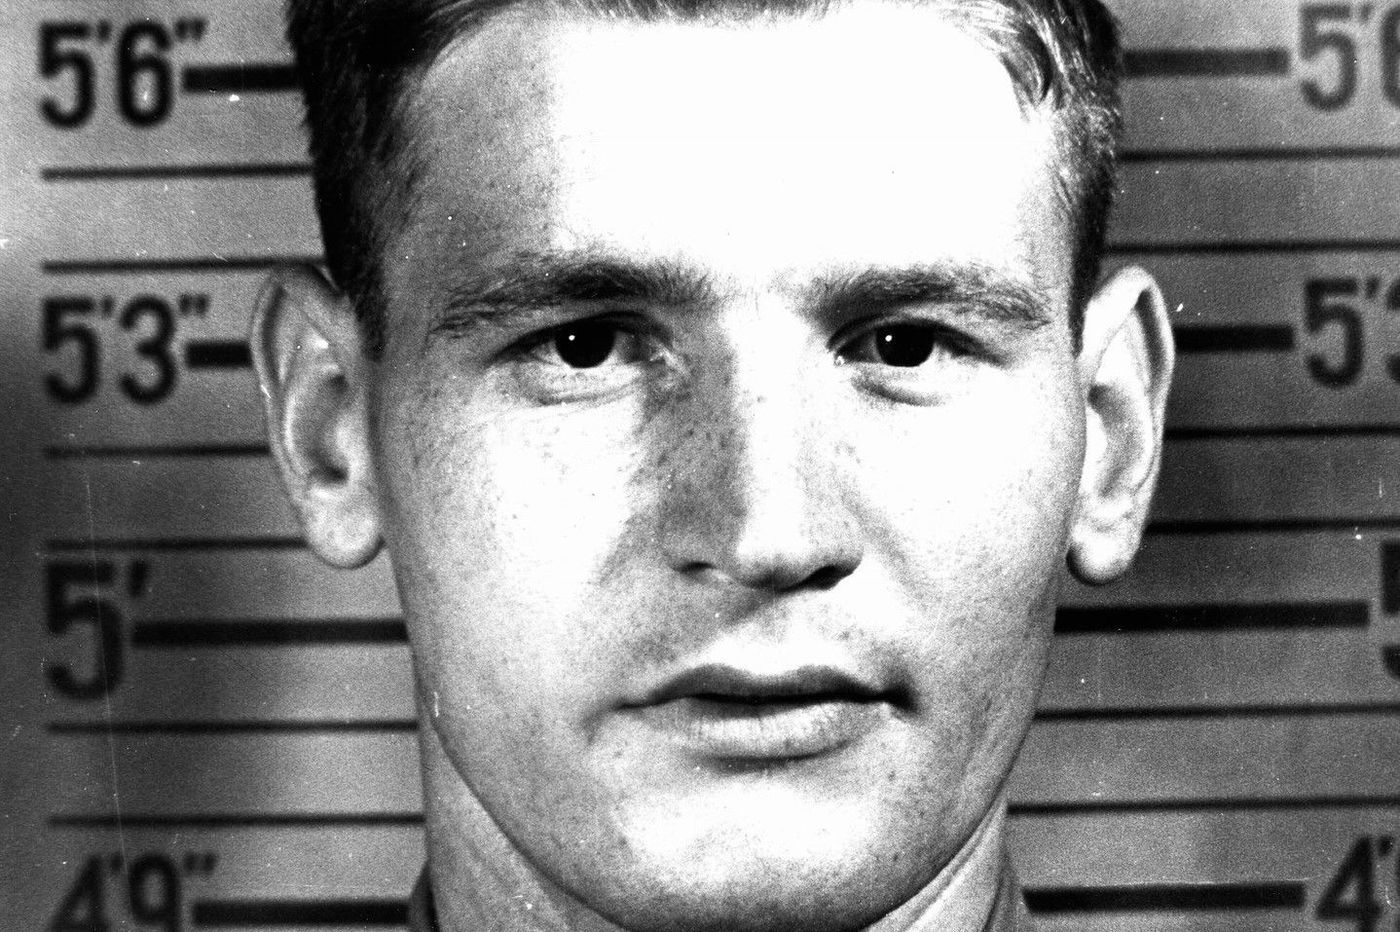 A Philly Marine was killed in action during WWII. His remains have finally been identified.